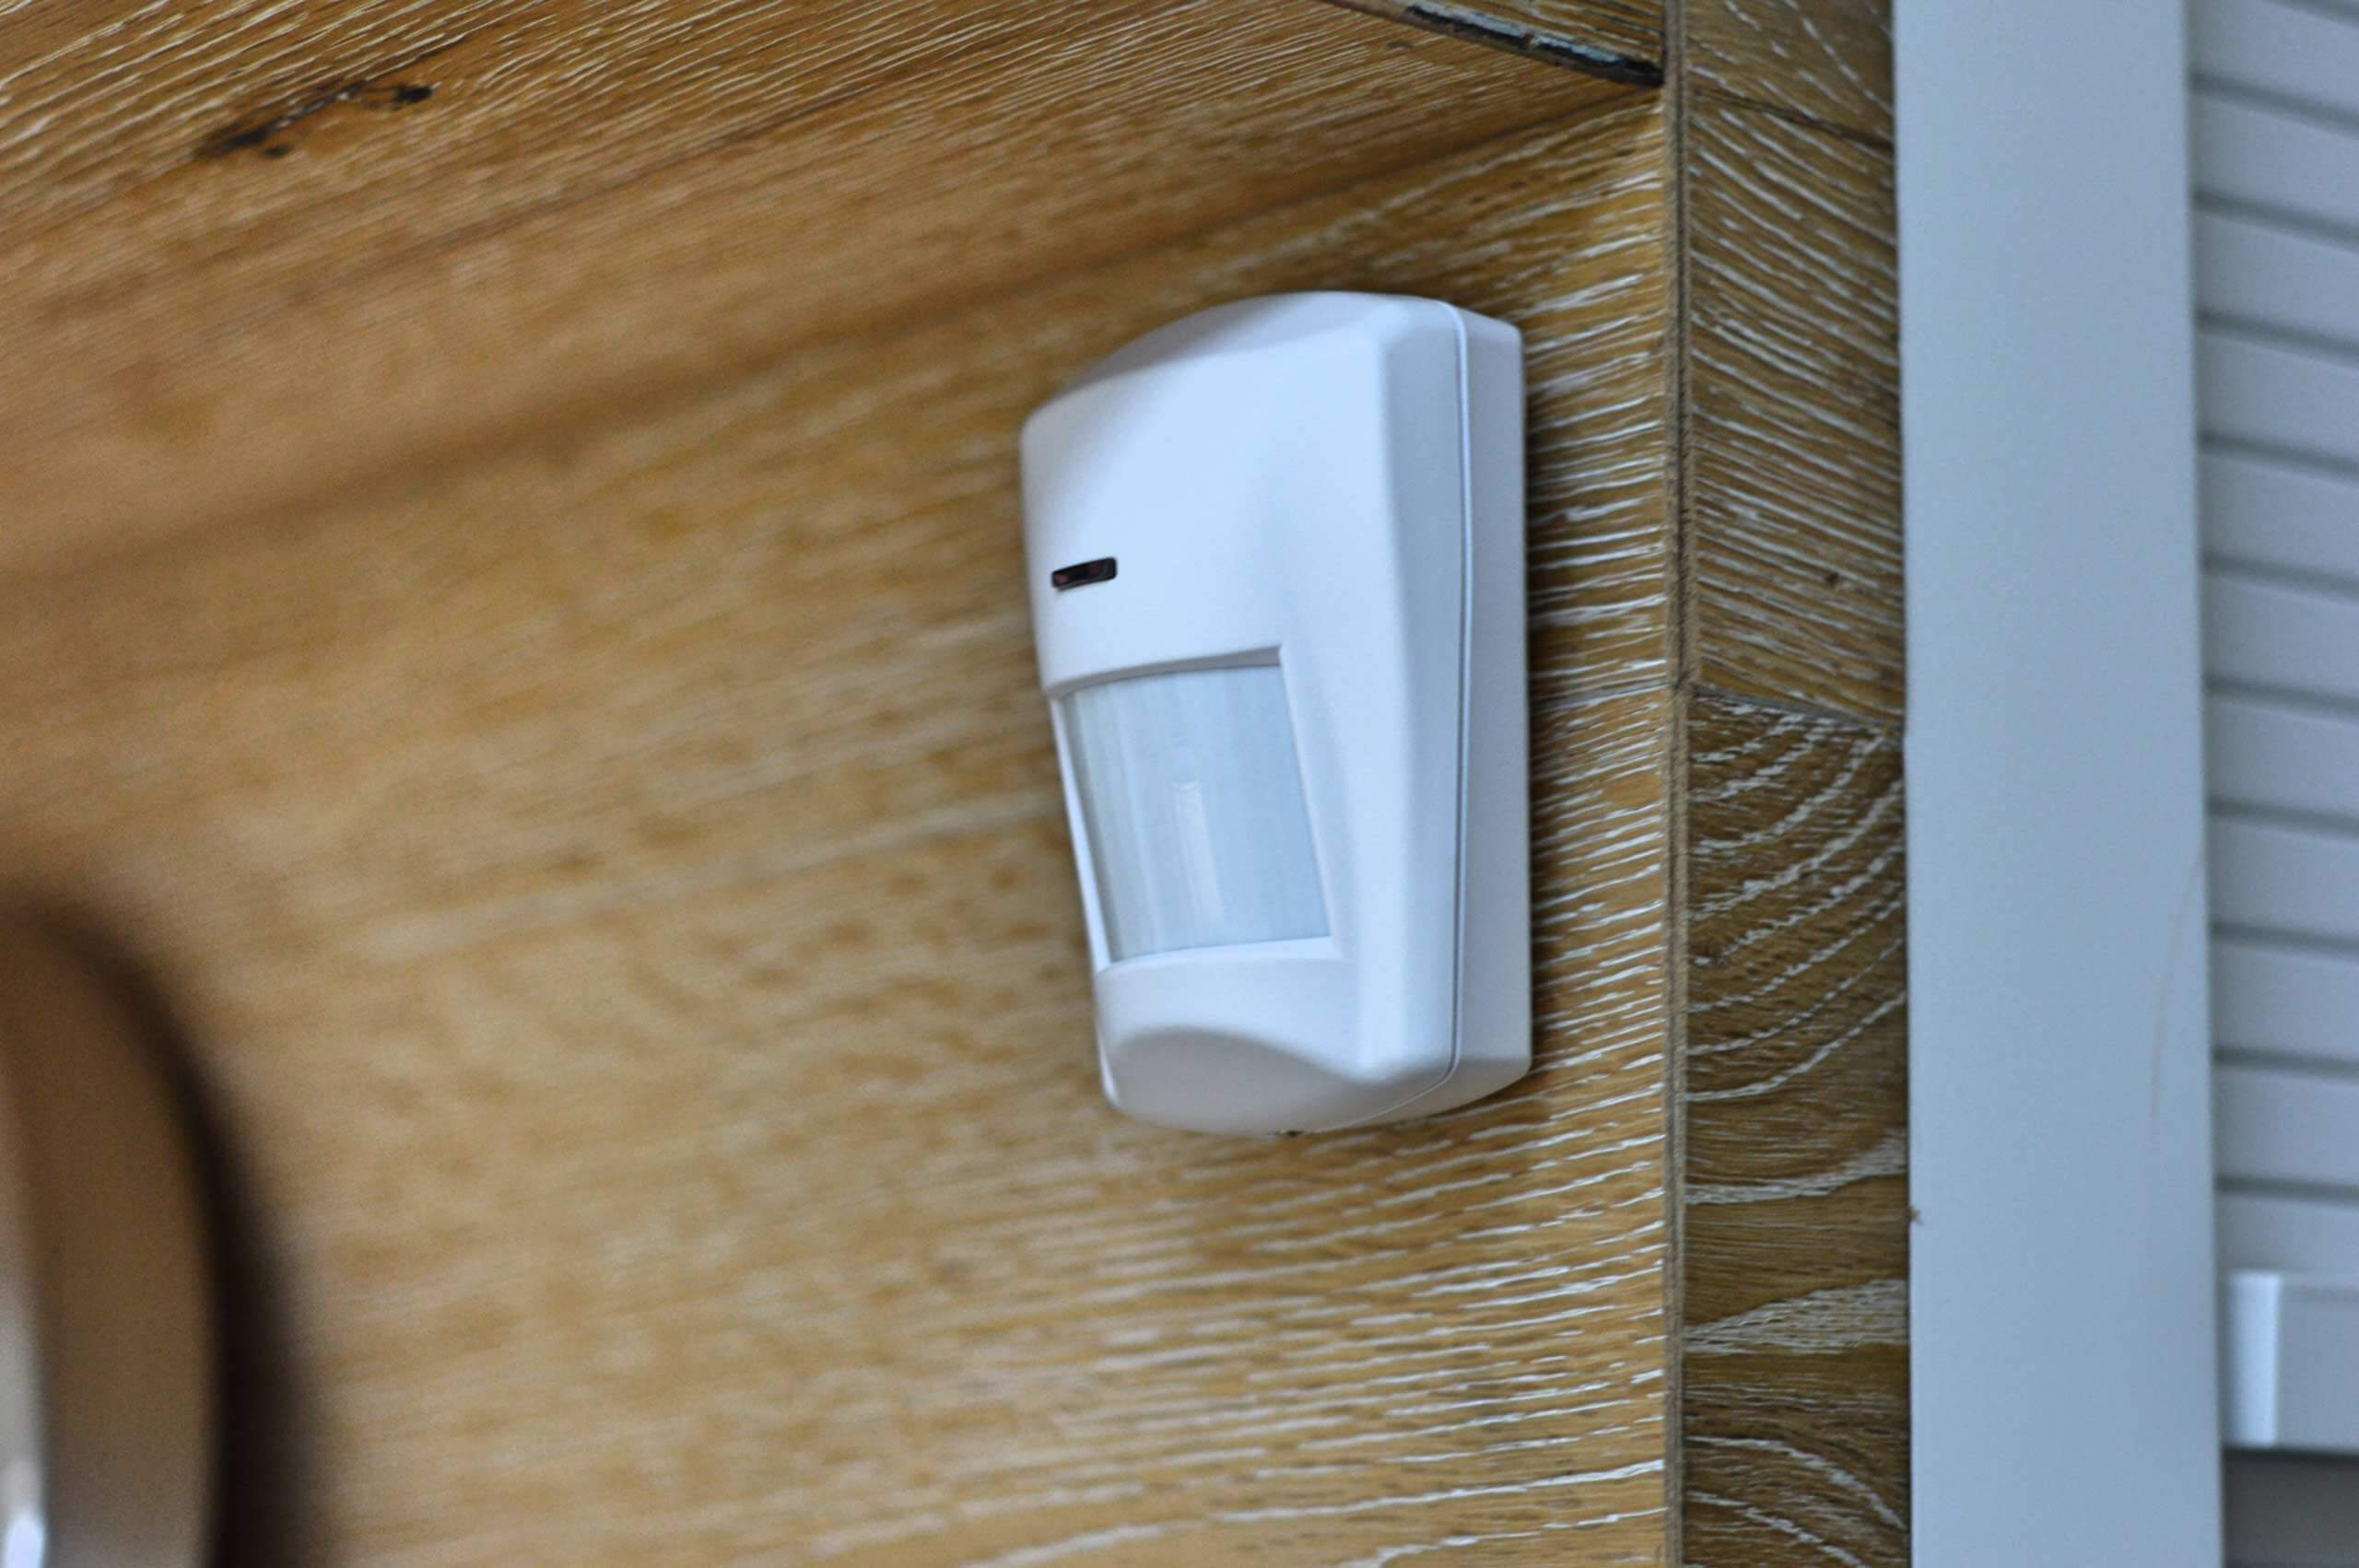 The motion sensor component of a home automation package clipped onto a modern wooden wall